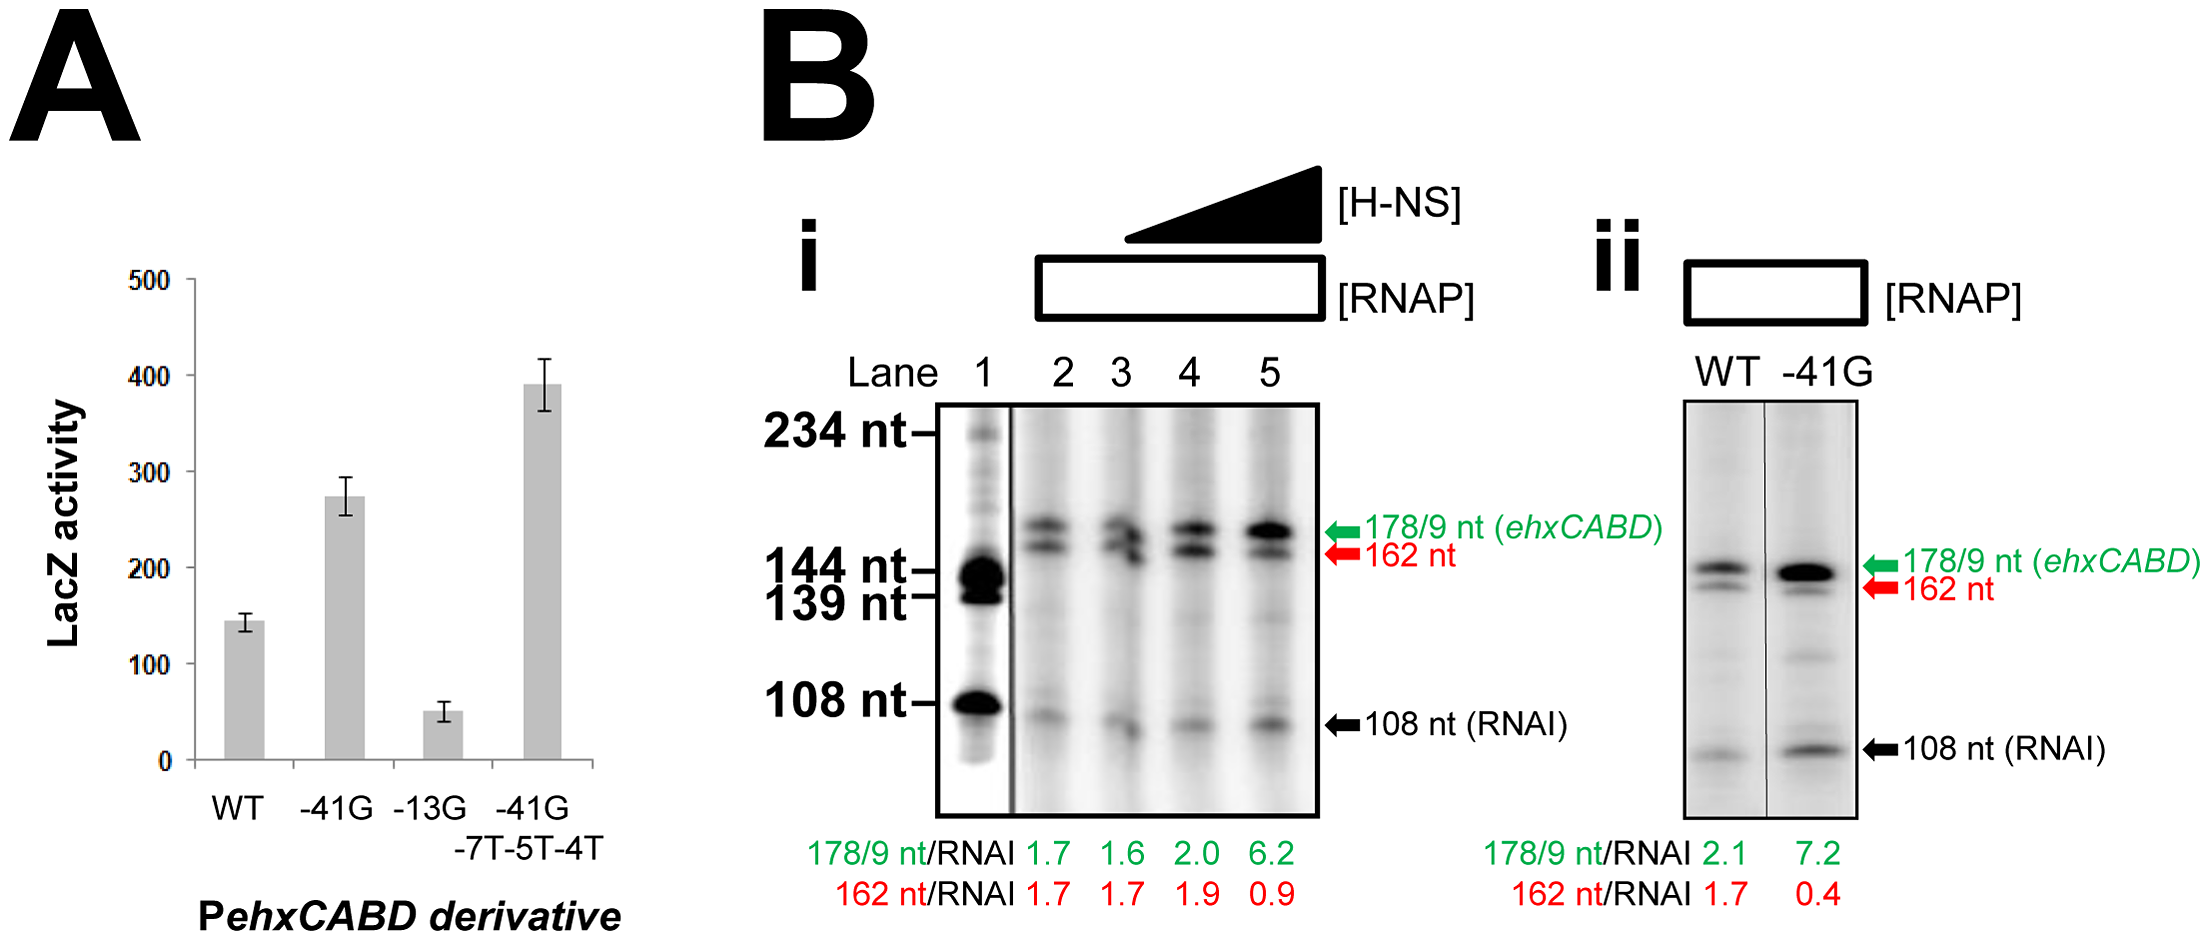 Transcription from P<i>ehxCABD</i> is inhibited by overlapping RNA polymerase binding sites.